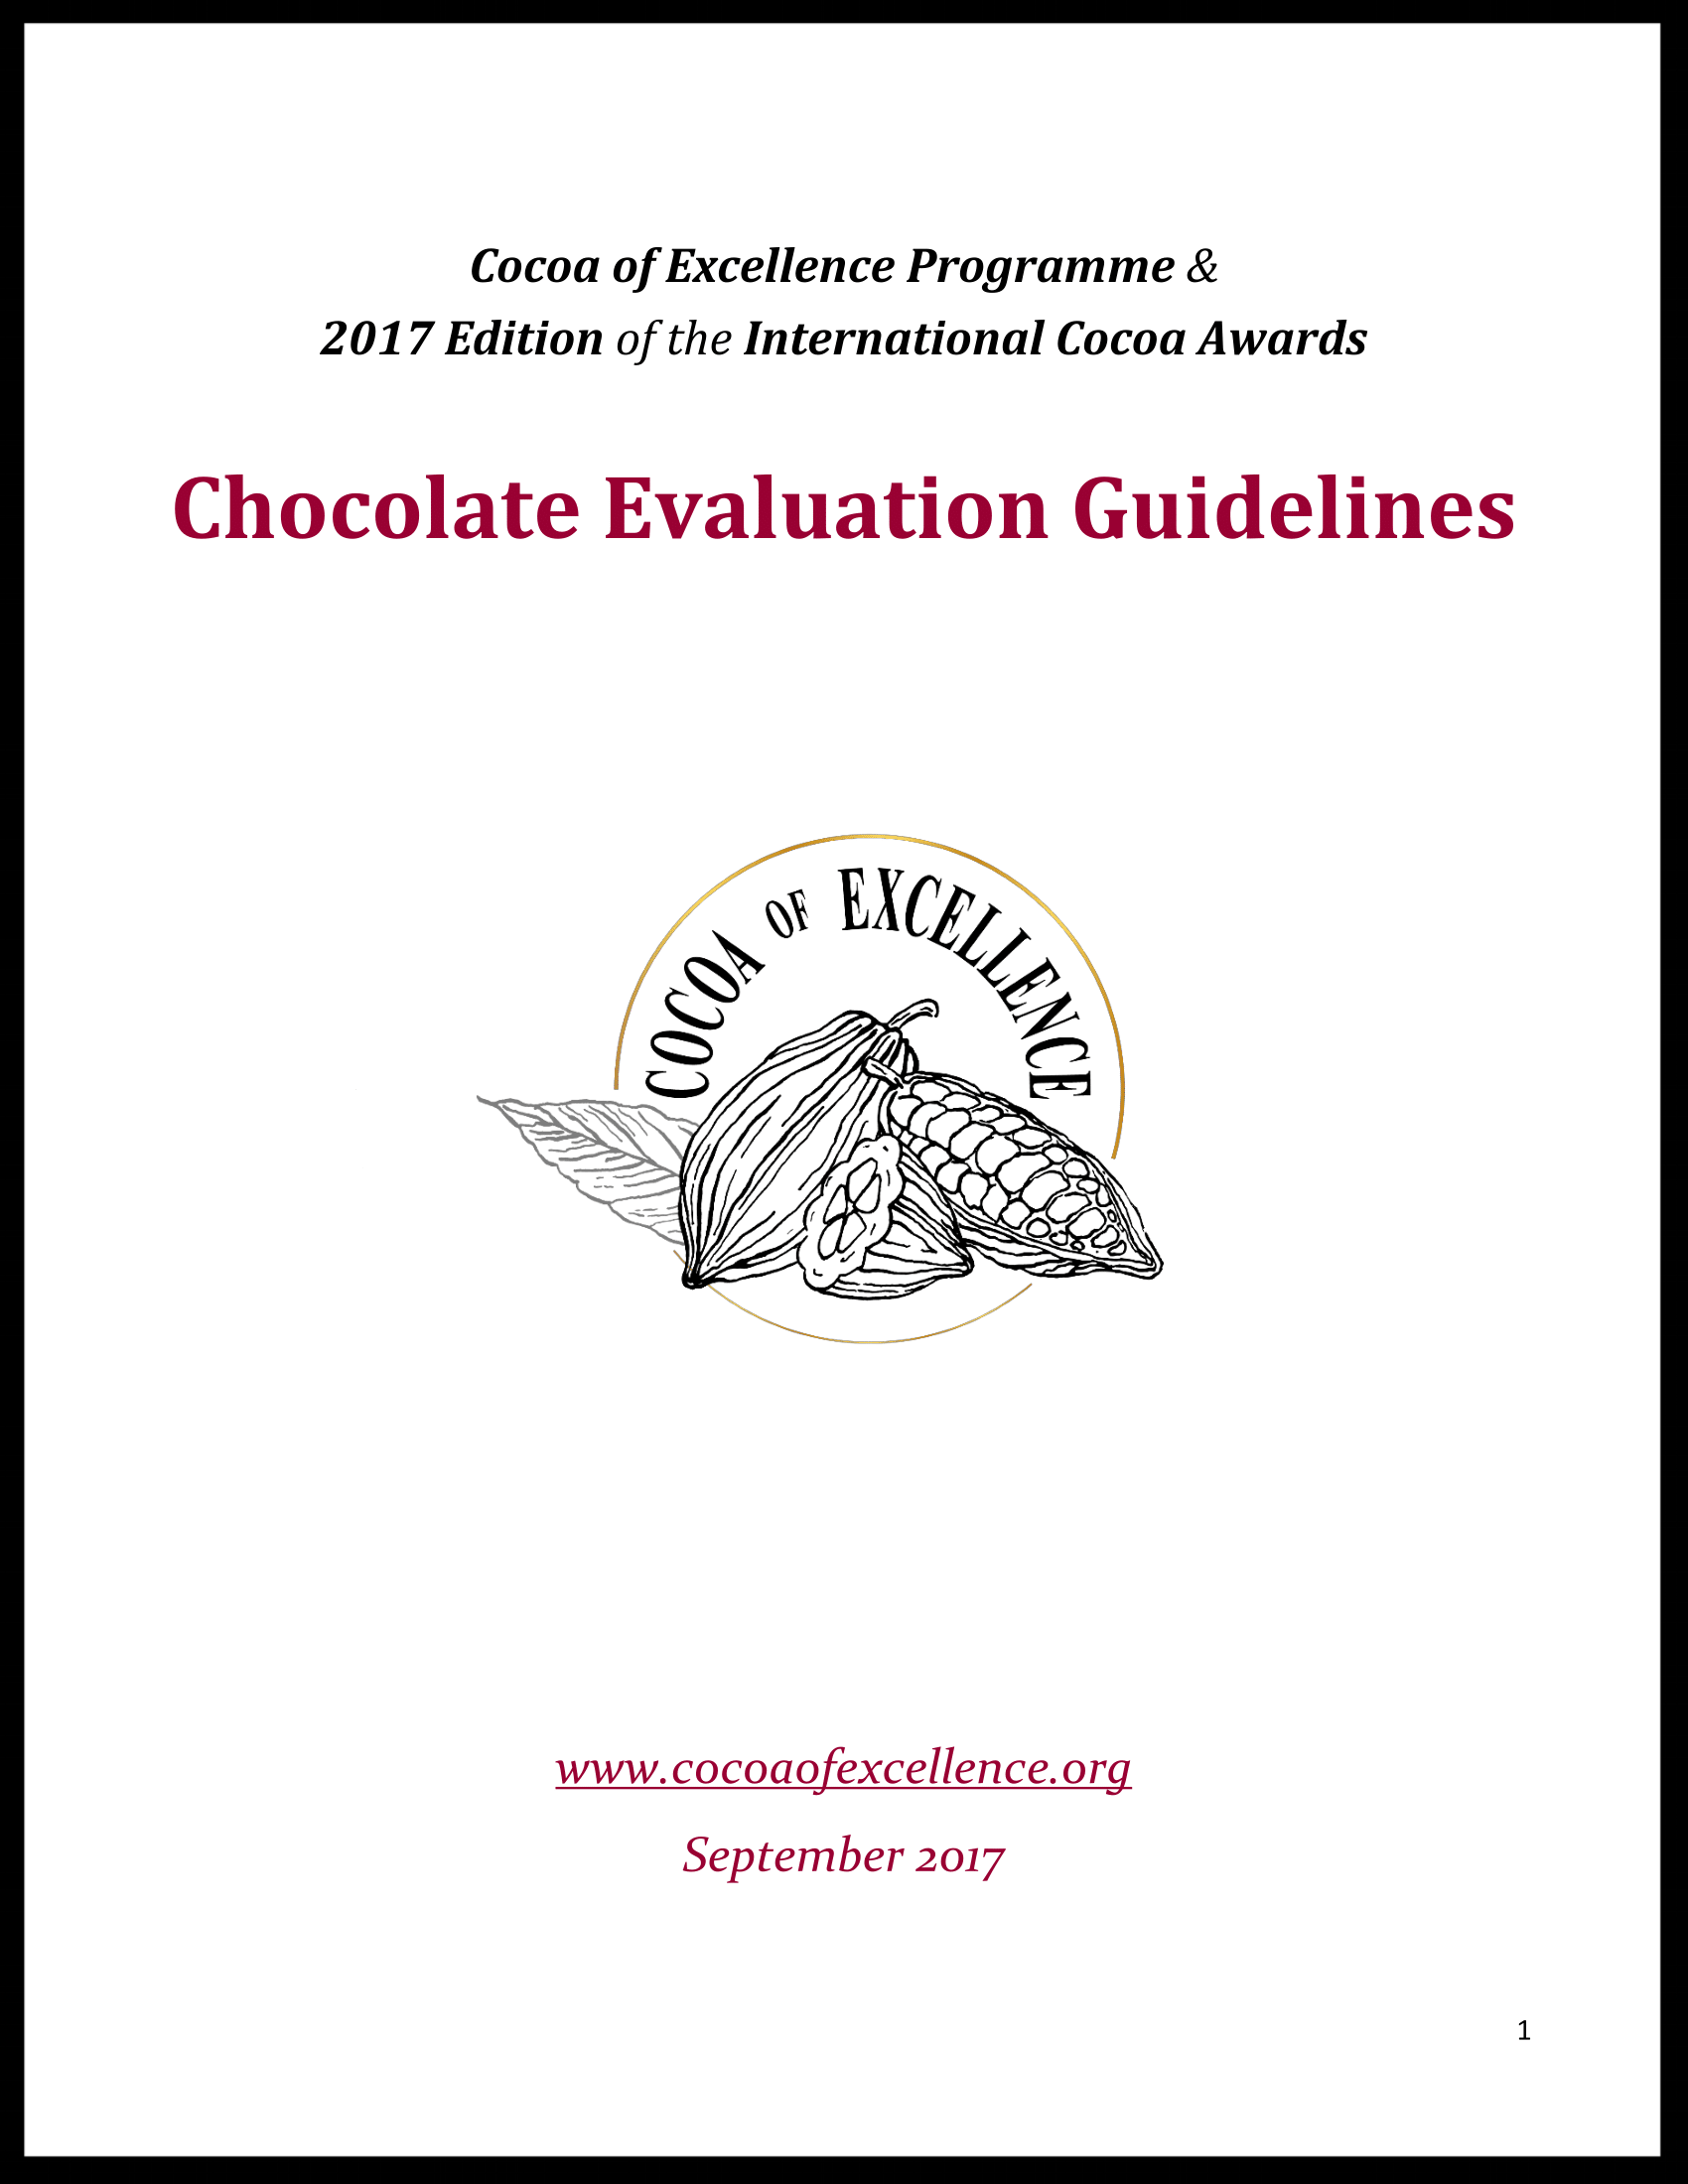 CoEx-ICA-2017-Chocolate-Evaluation-guidelines-01.png